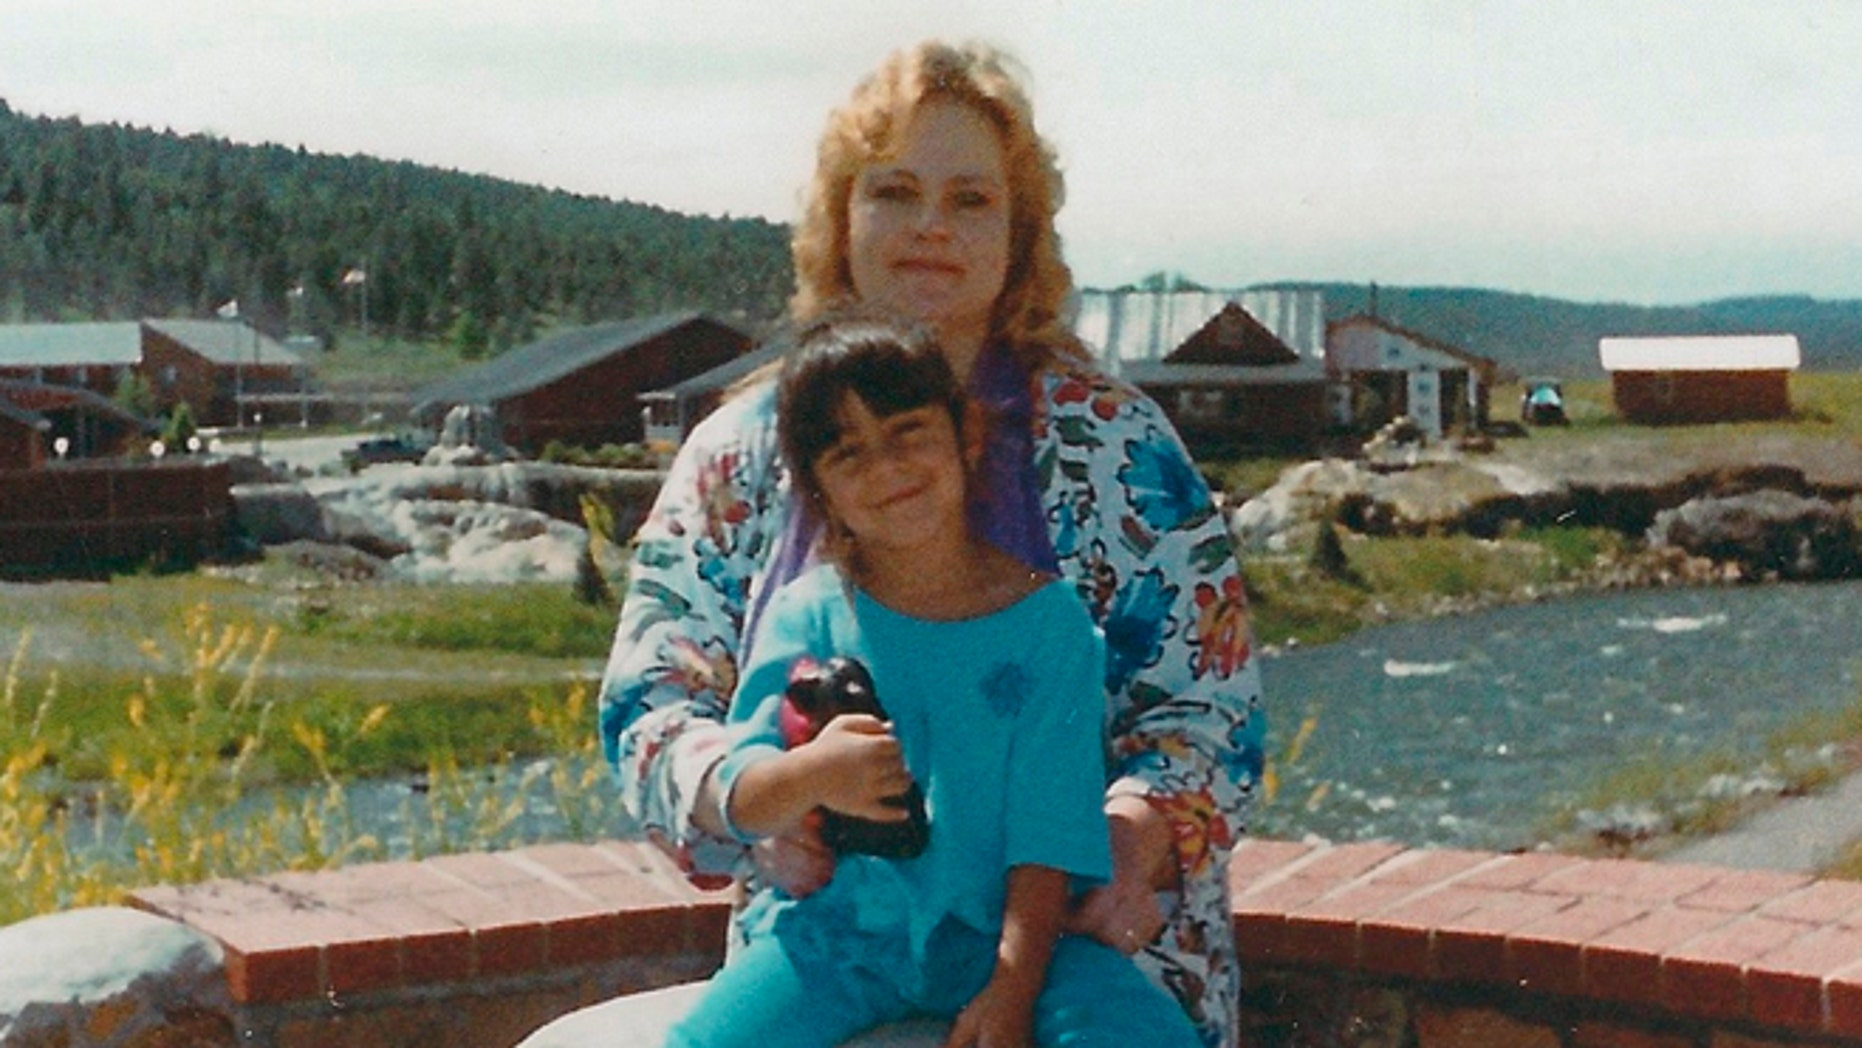 Laura Miera is seen with her daughter Cassandra. In 2002, a tractor-trailer overturned, burying Laura Miera's car in sand and suffocating her inside, in Albuquerque, N.M.